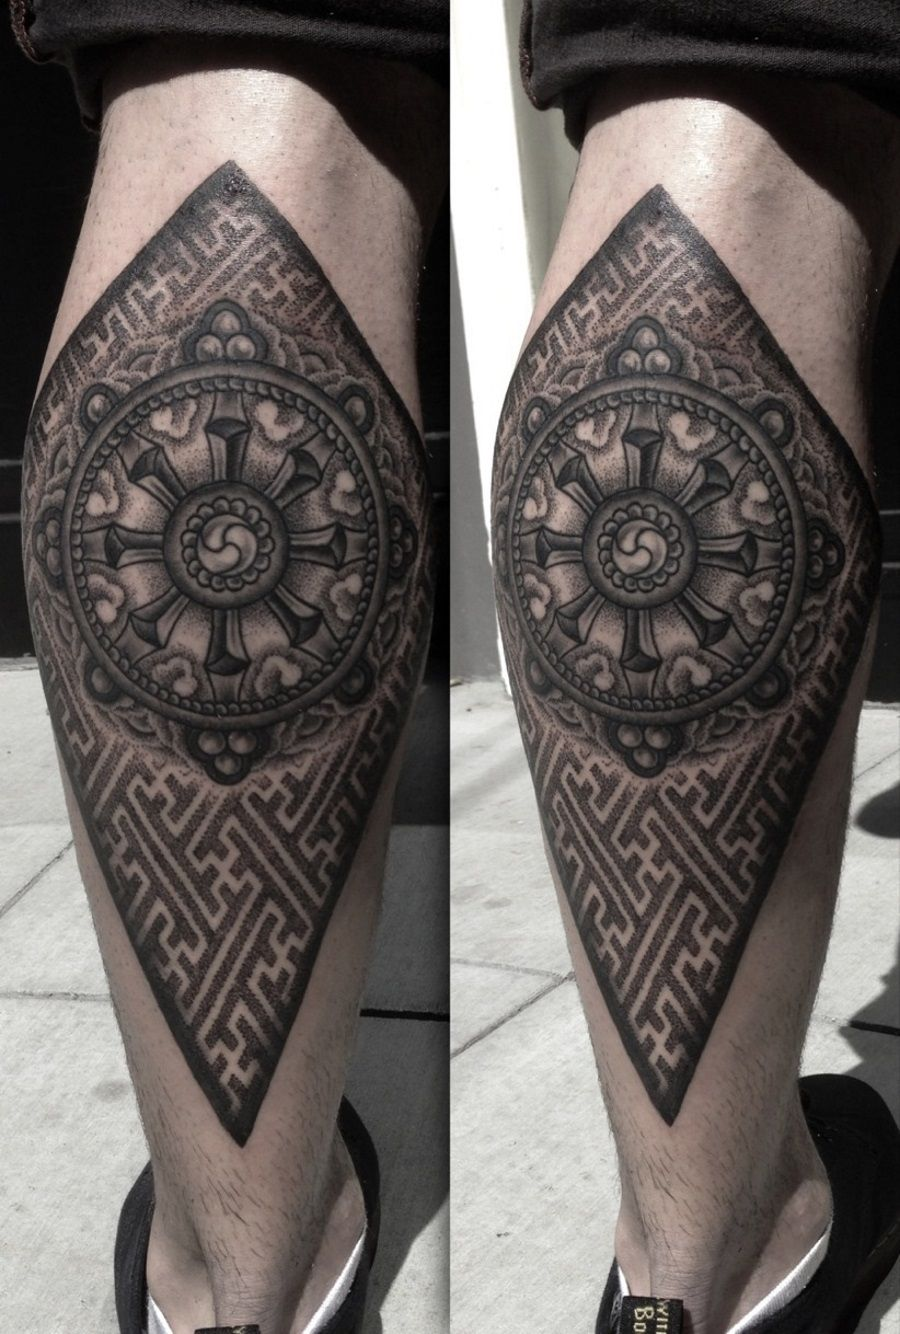 this tattoo is showing the wheel of life and the syagata